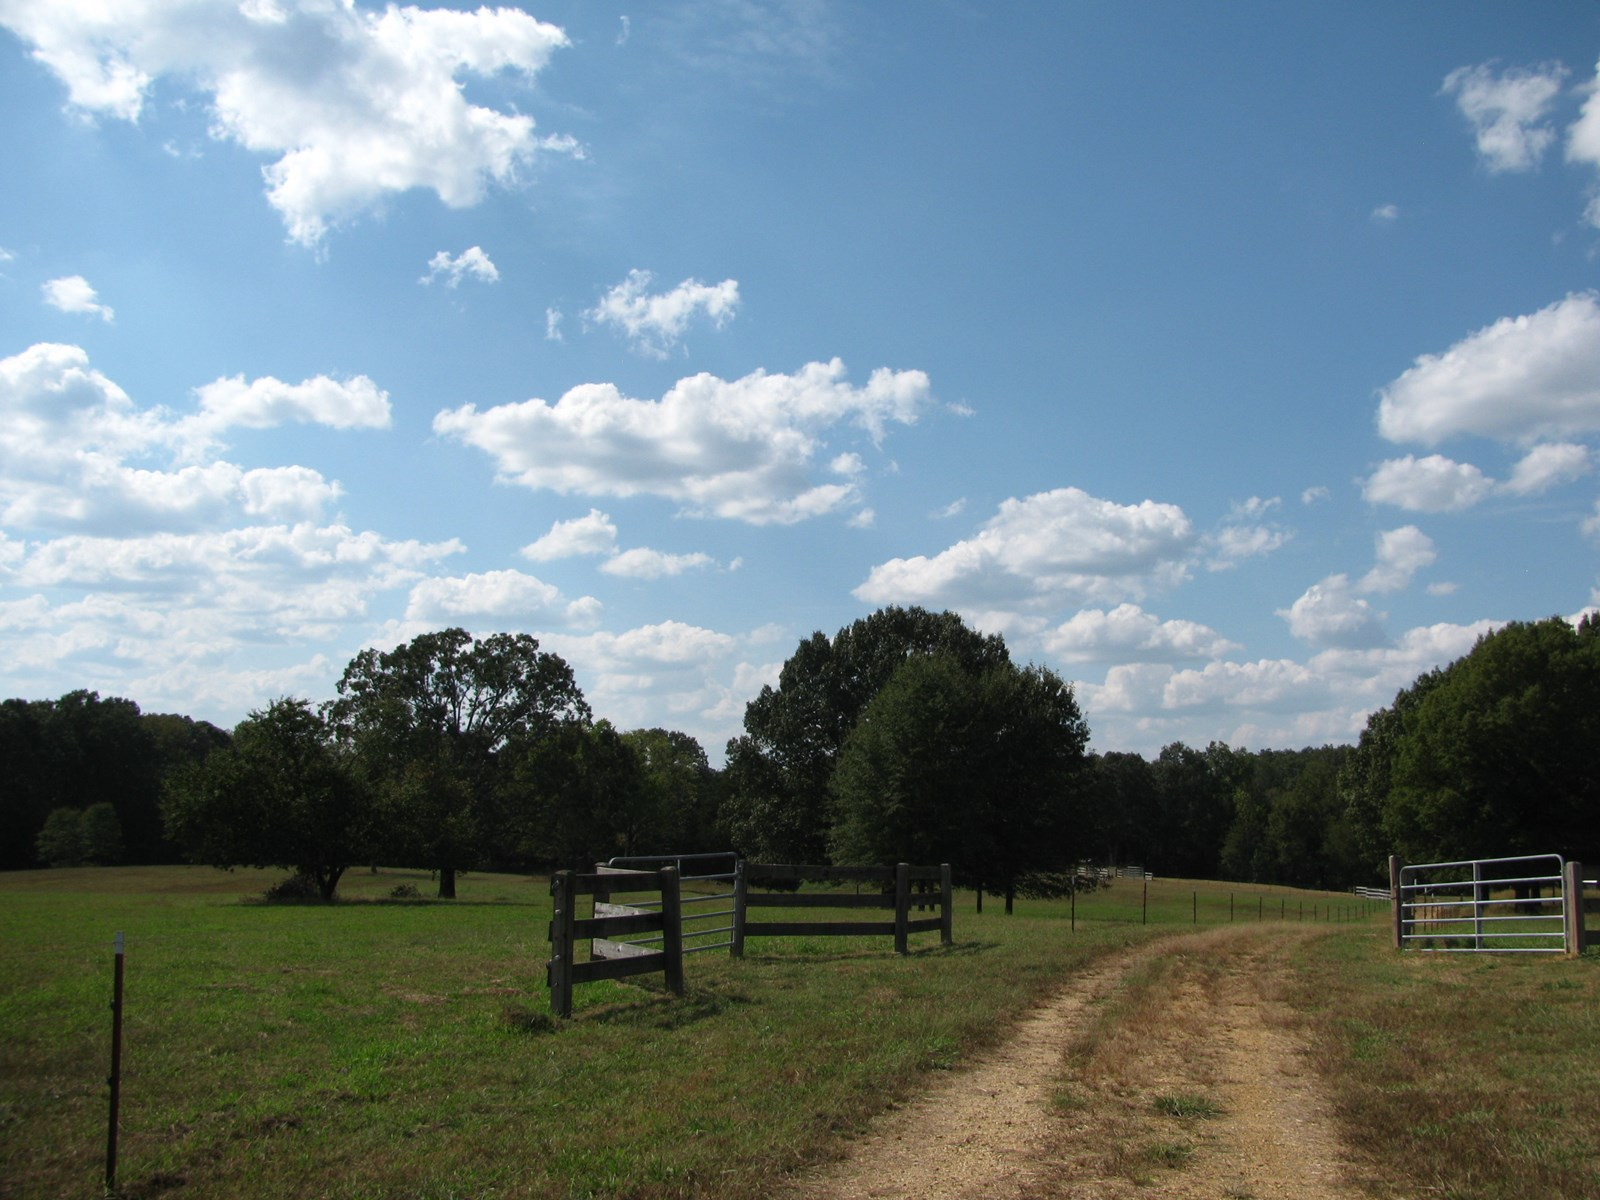 FENCED PASTURE LAND FOR SALE IN TN, CATTLE OR HORSE FARM